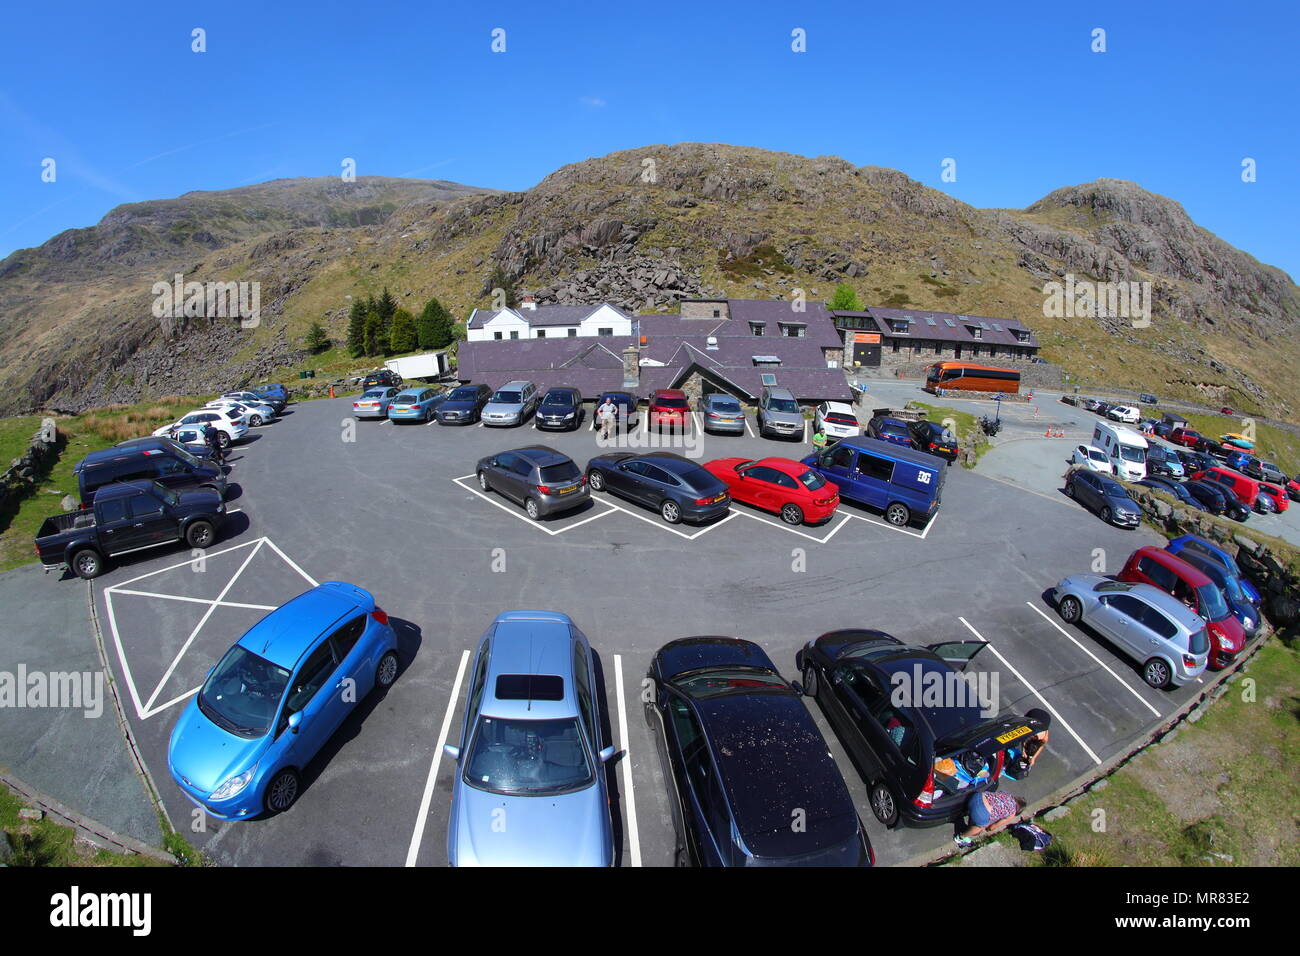 Pen-Y-Pass Car Park at the start of some of Snowdons routes to the summit. - Stock Image